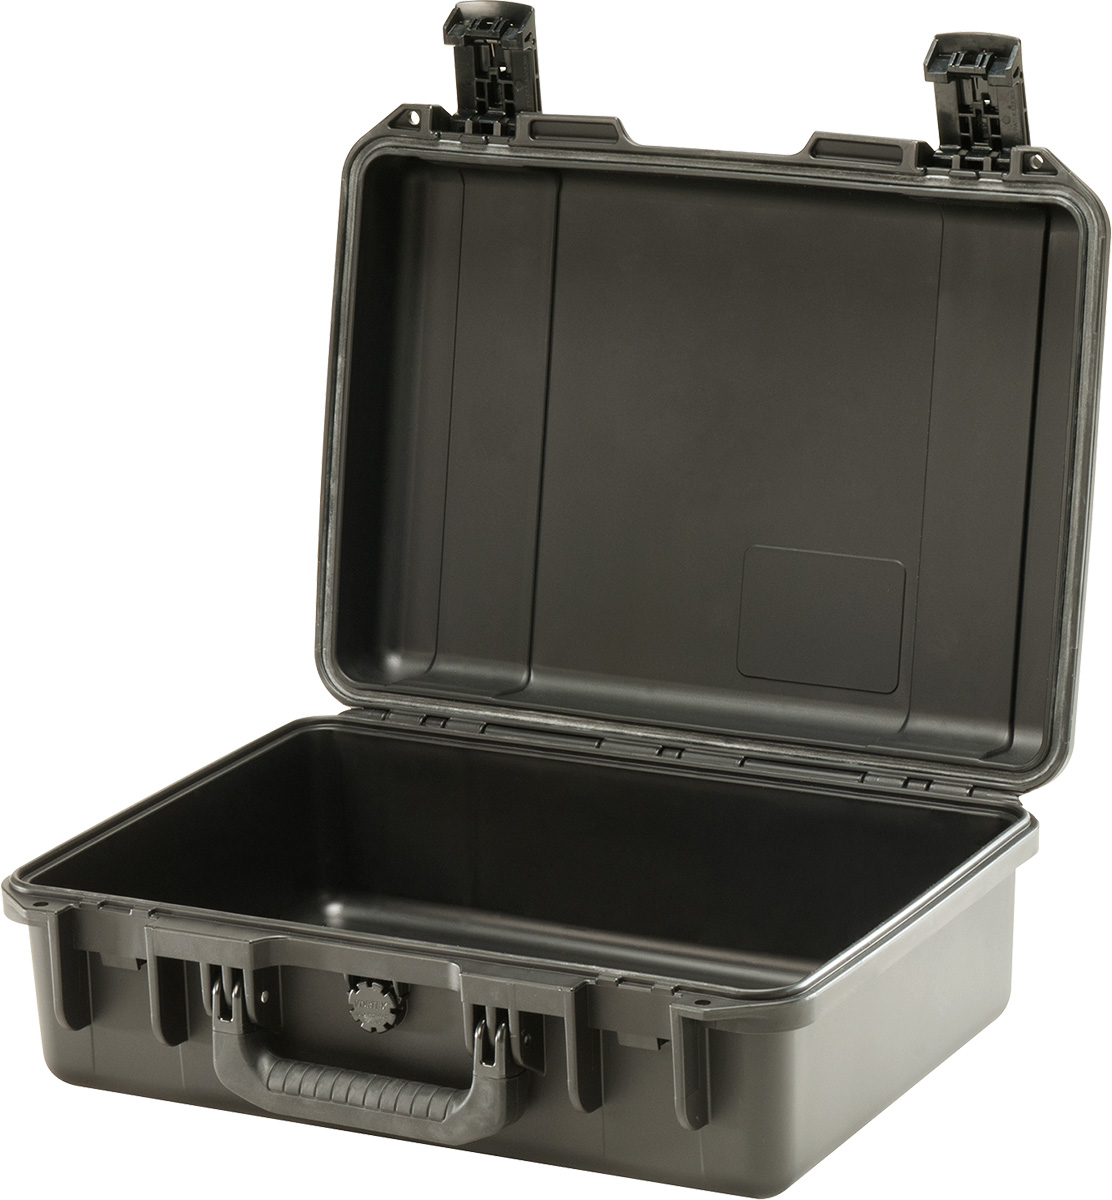 shop pelican storm im2300 buy water proof hard case hardcase